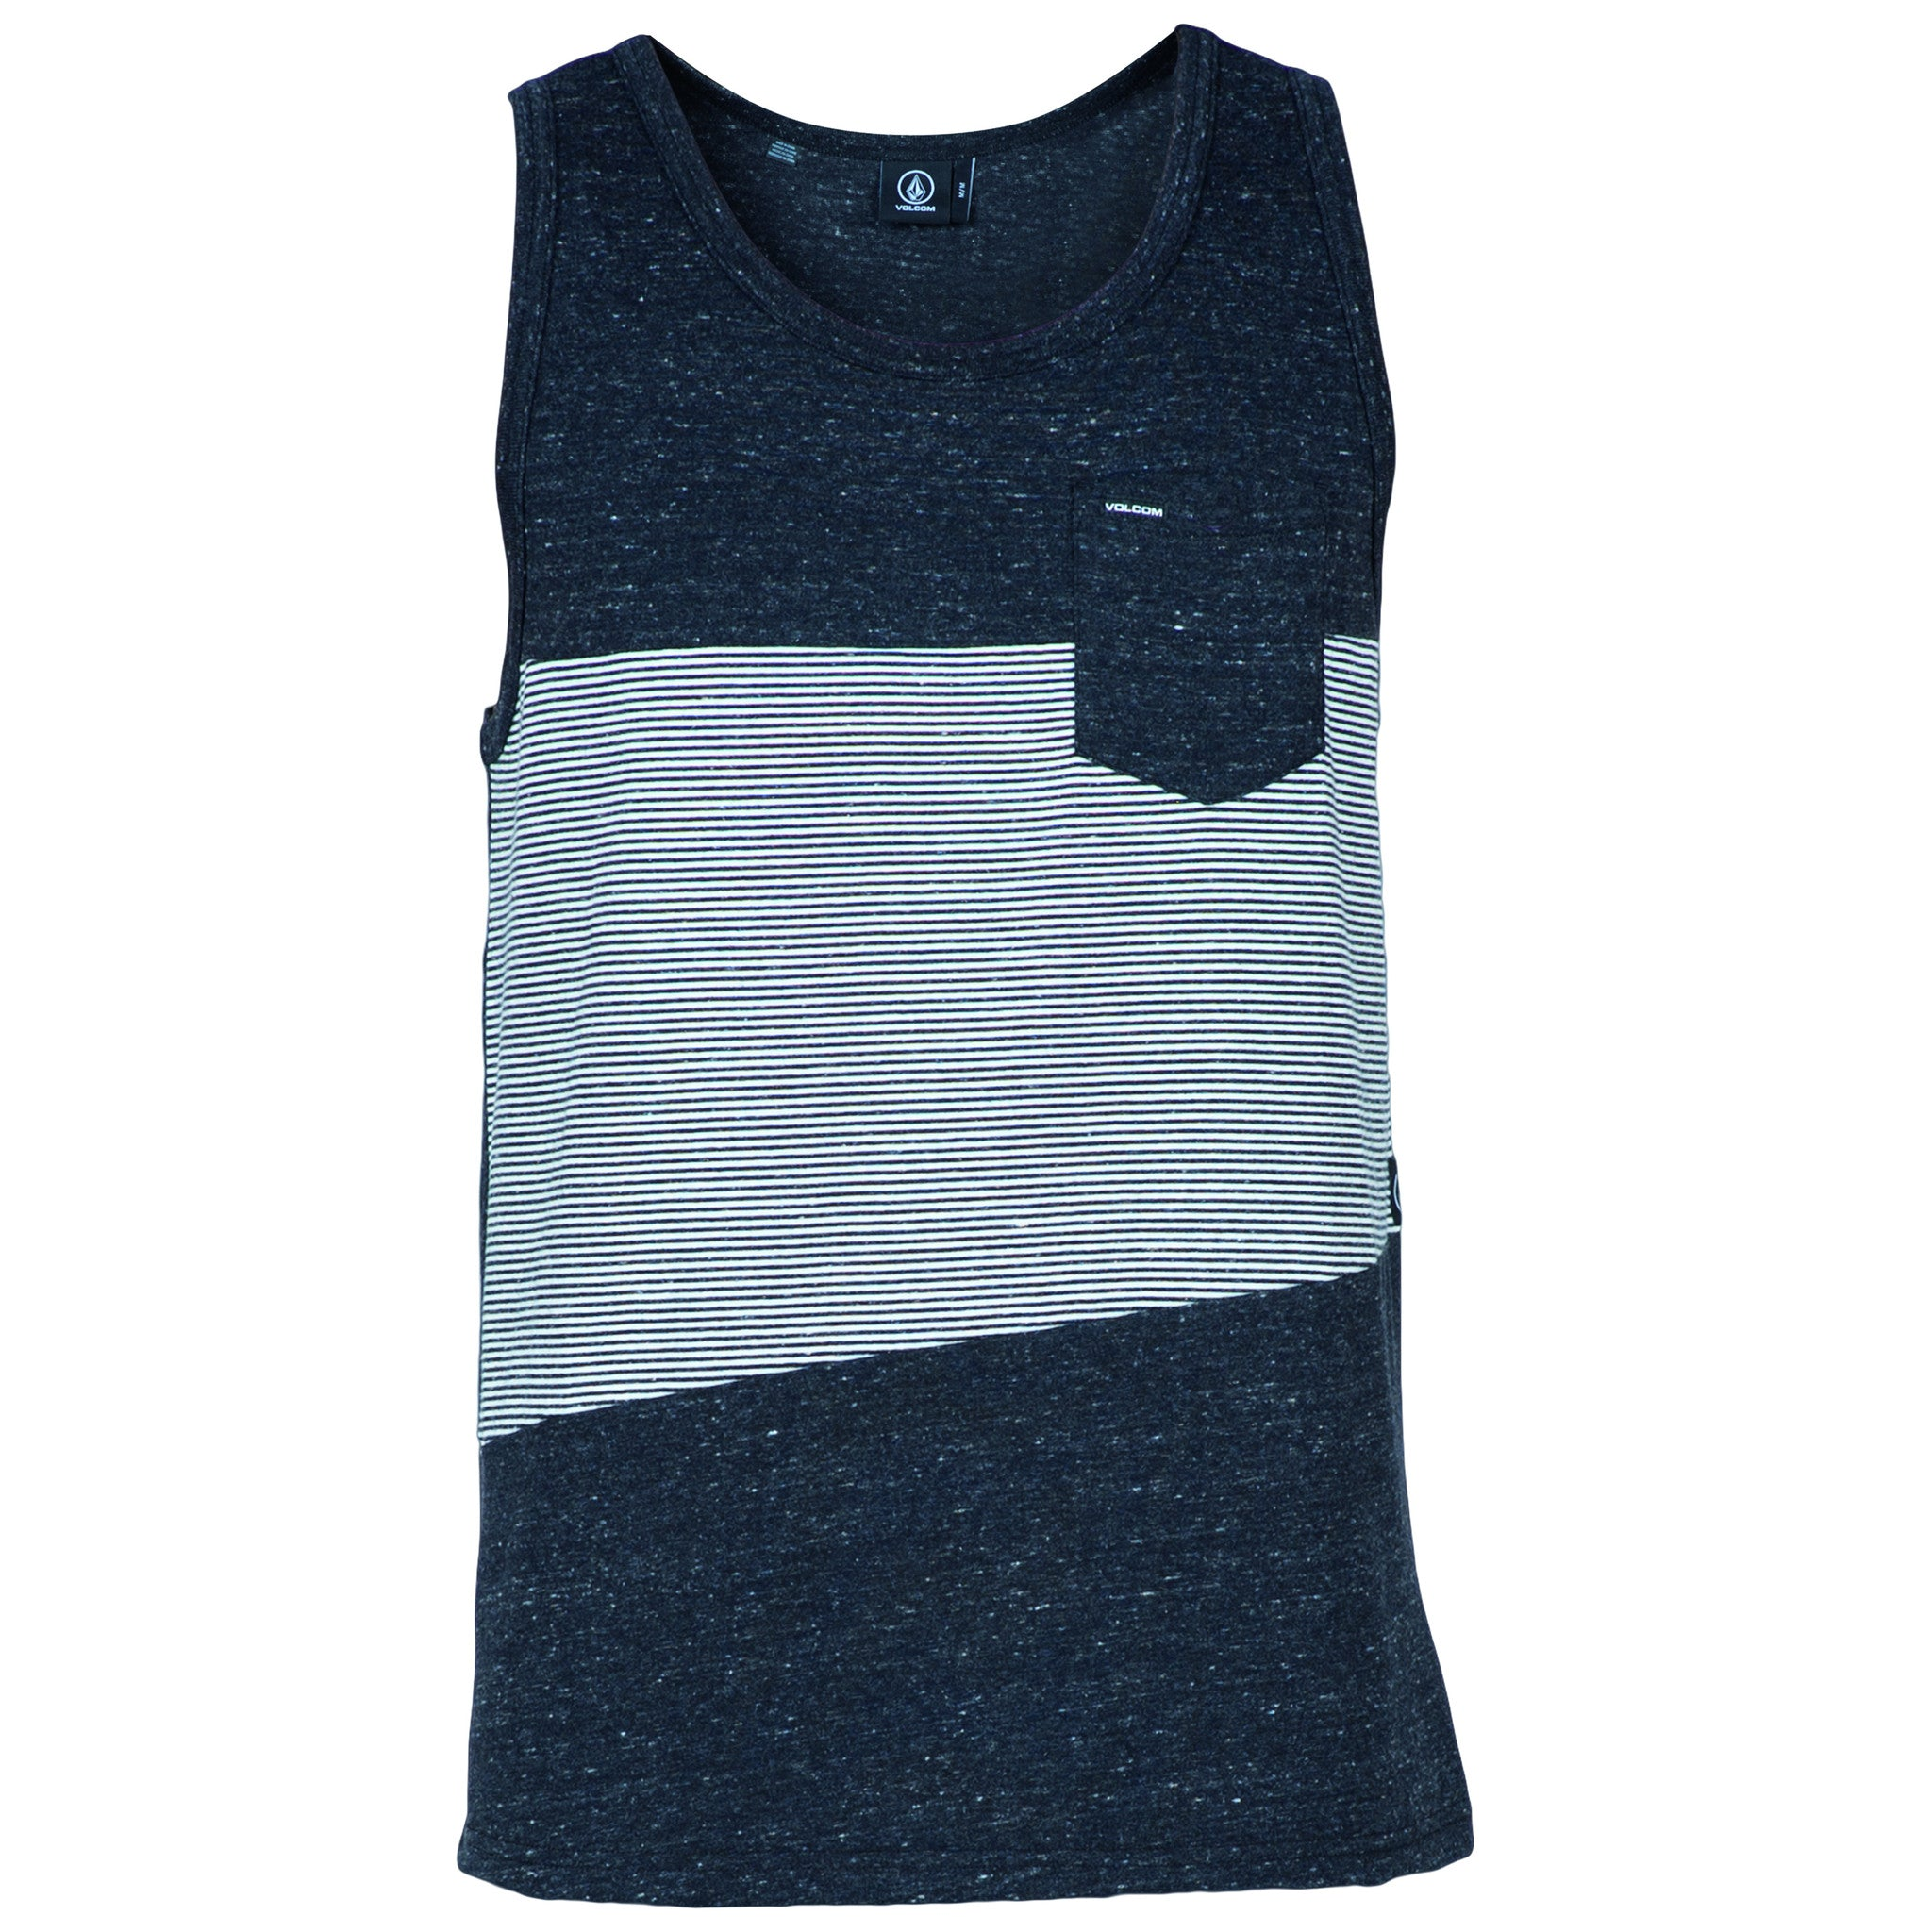 Threezy Tank BLK - Stoked Boardshop